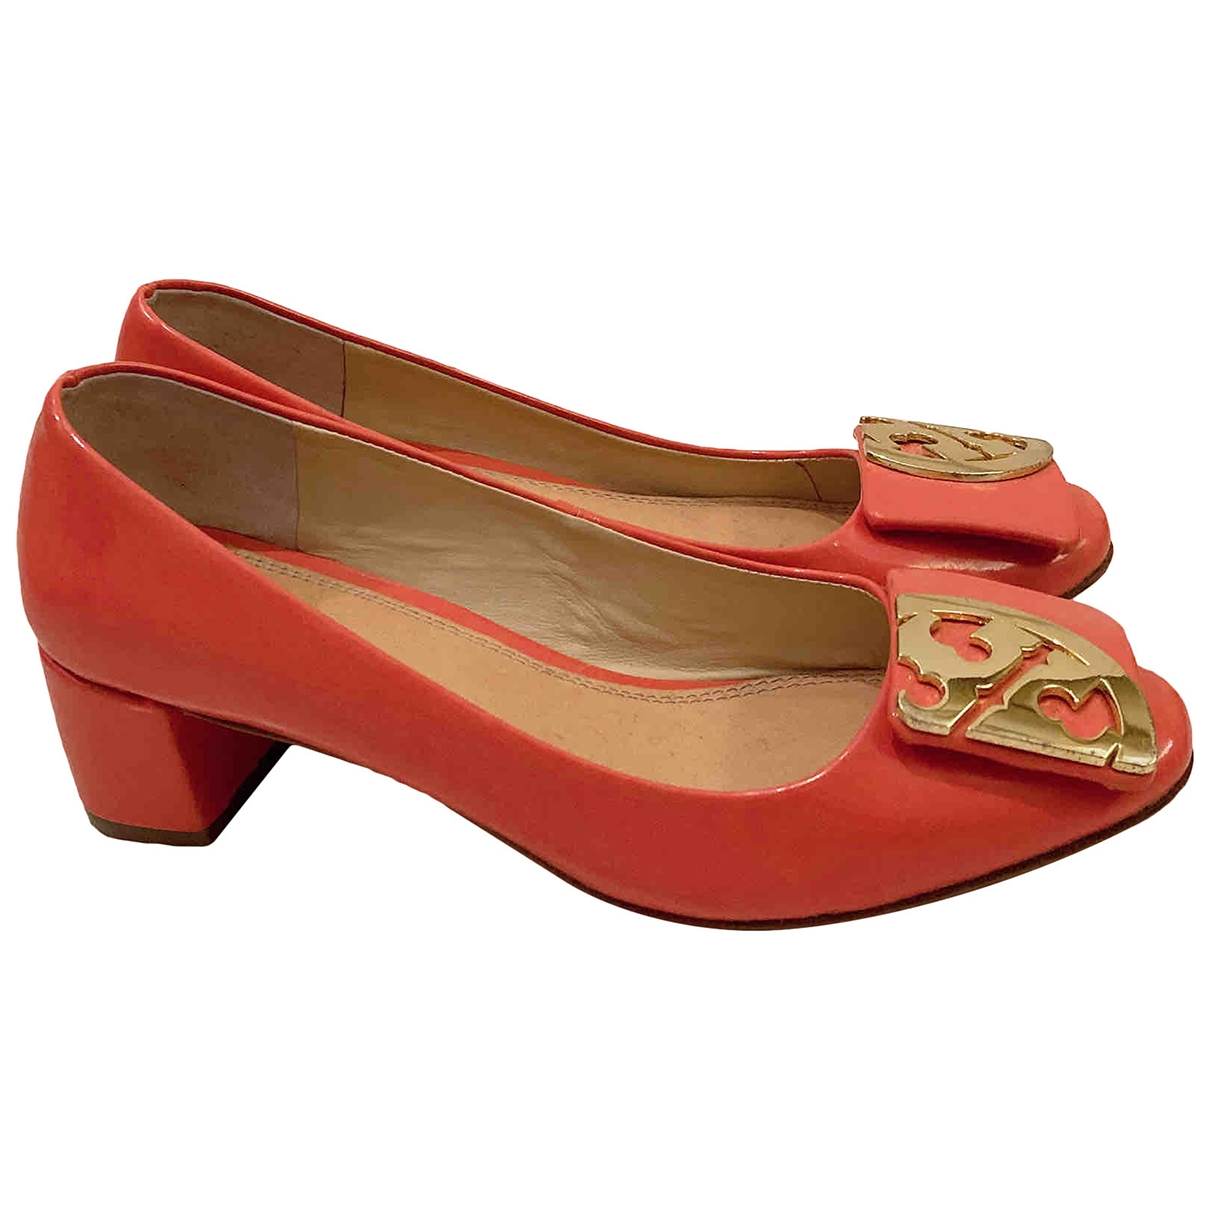 Tory Burch \N Orange Patent leather Heels for Women 37 EU